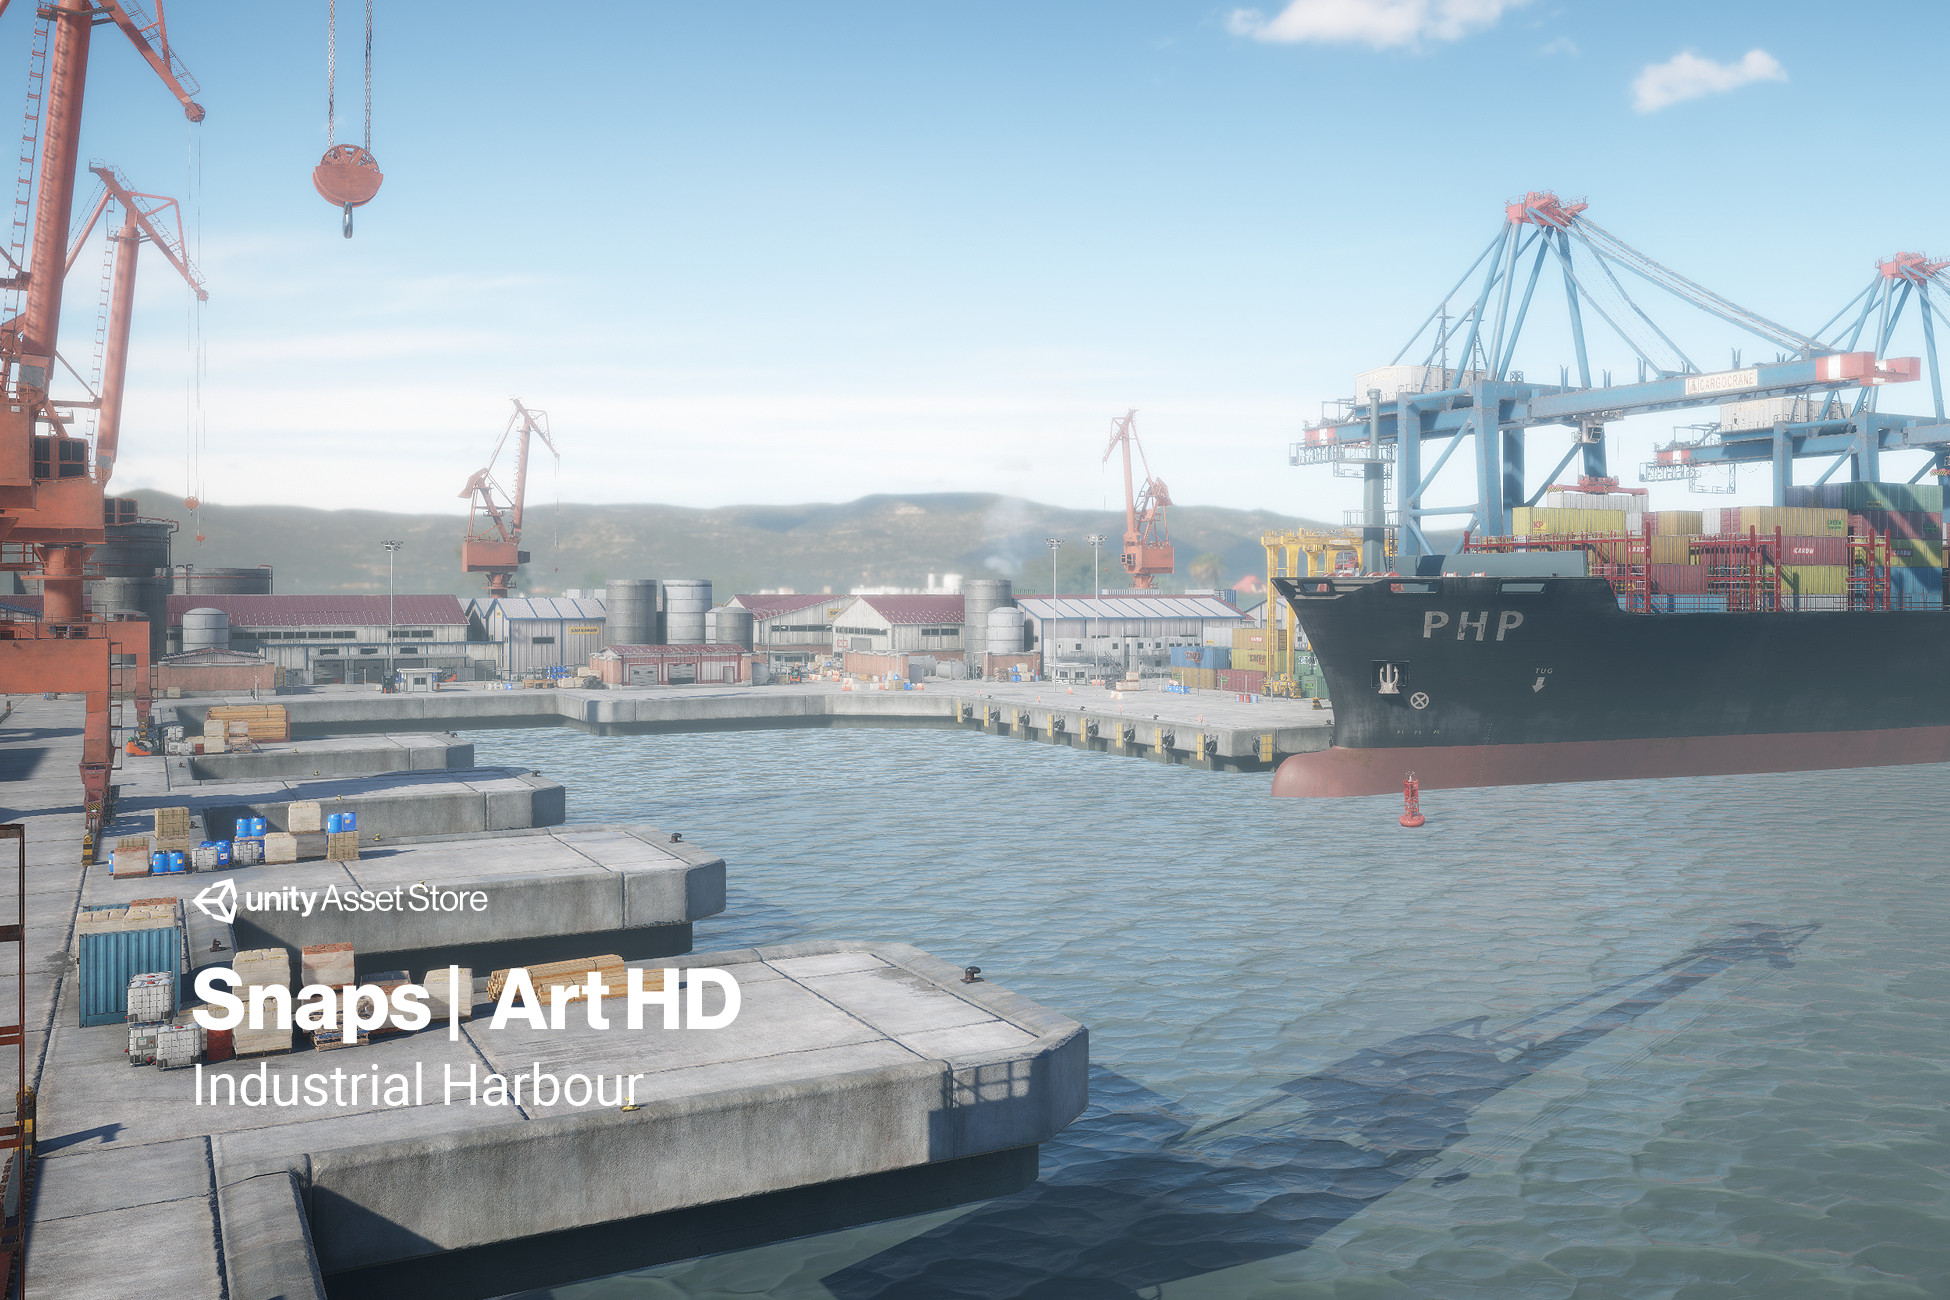 Snaps Art HD | Industrial Harbour